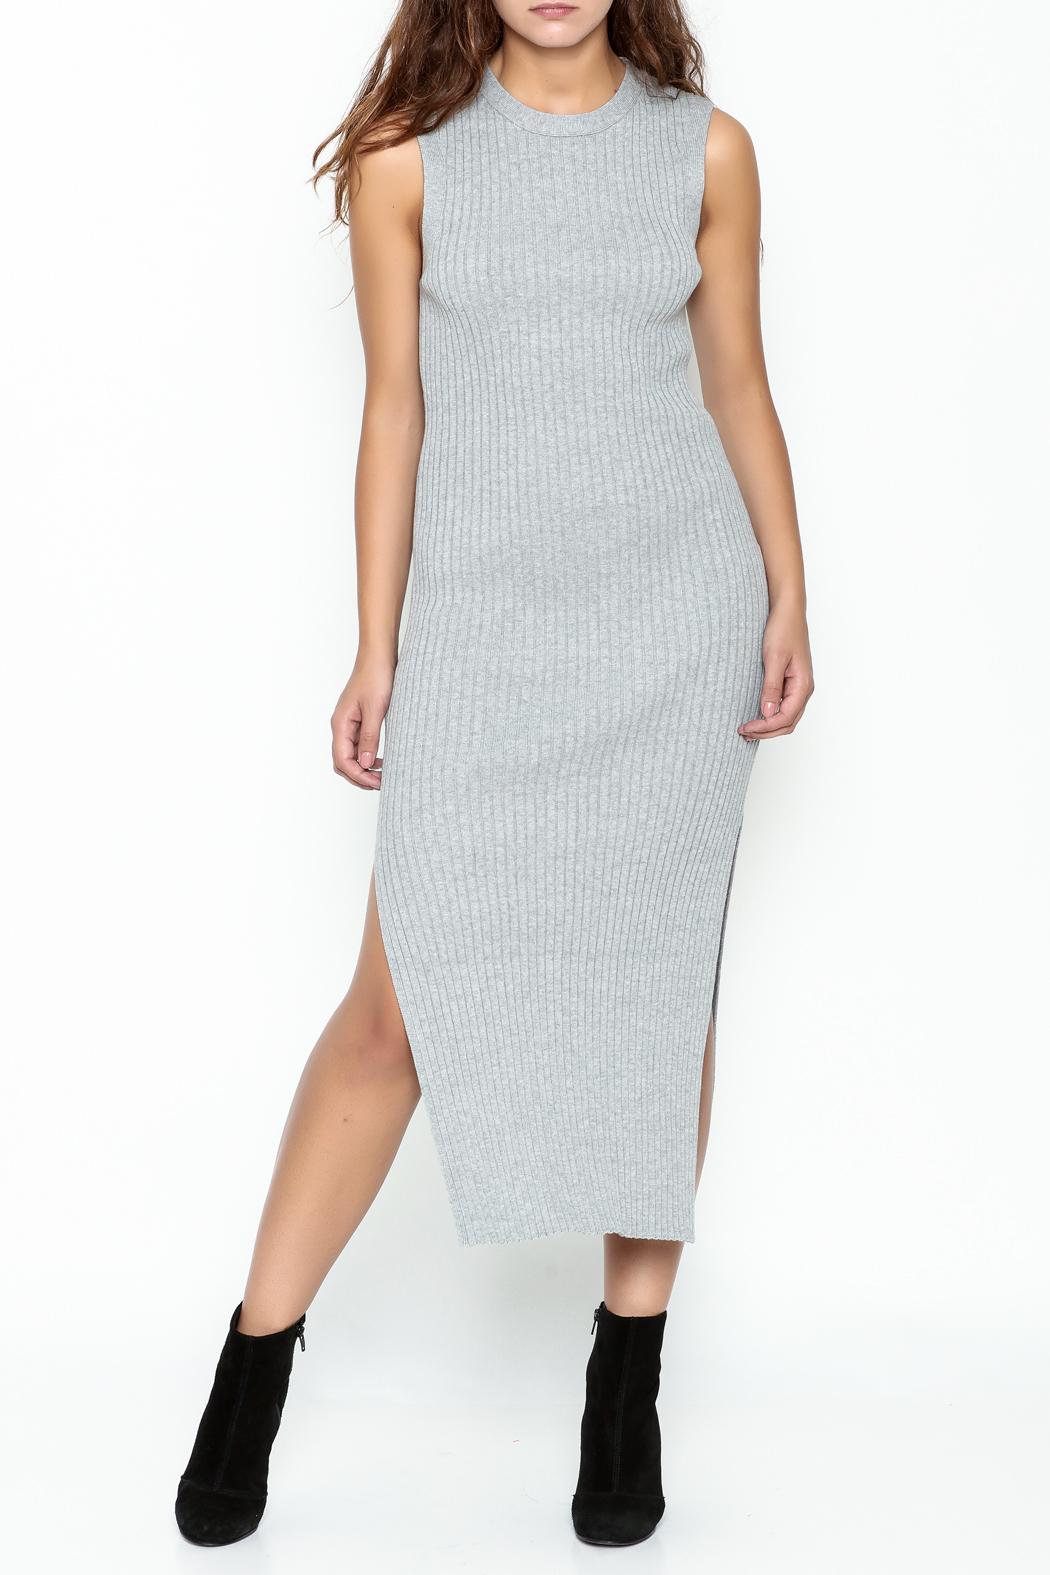 FRAME Denim Grey Ribbed Dress - Main Image